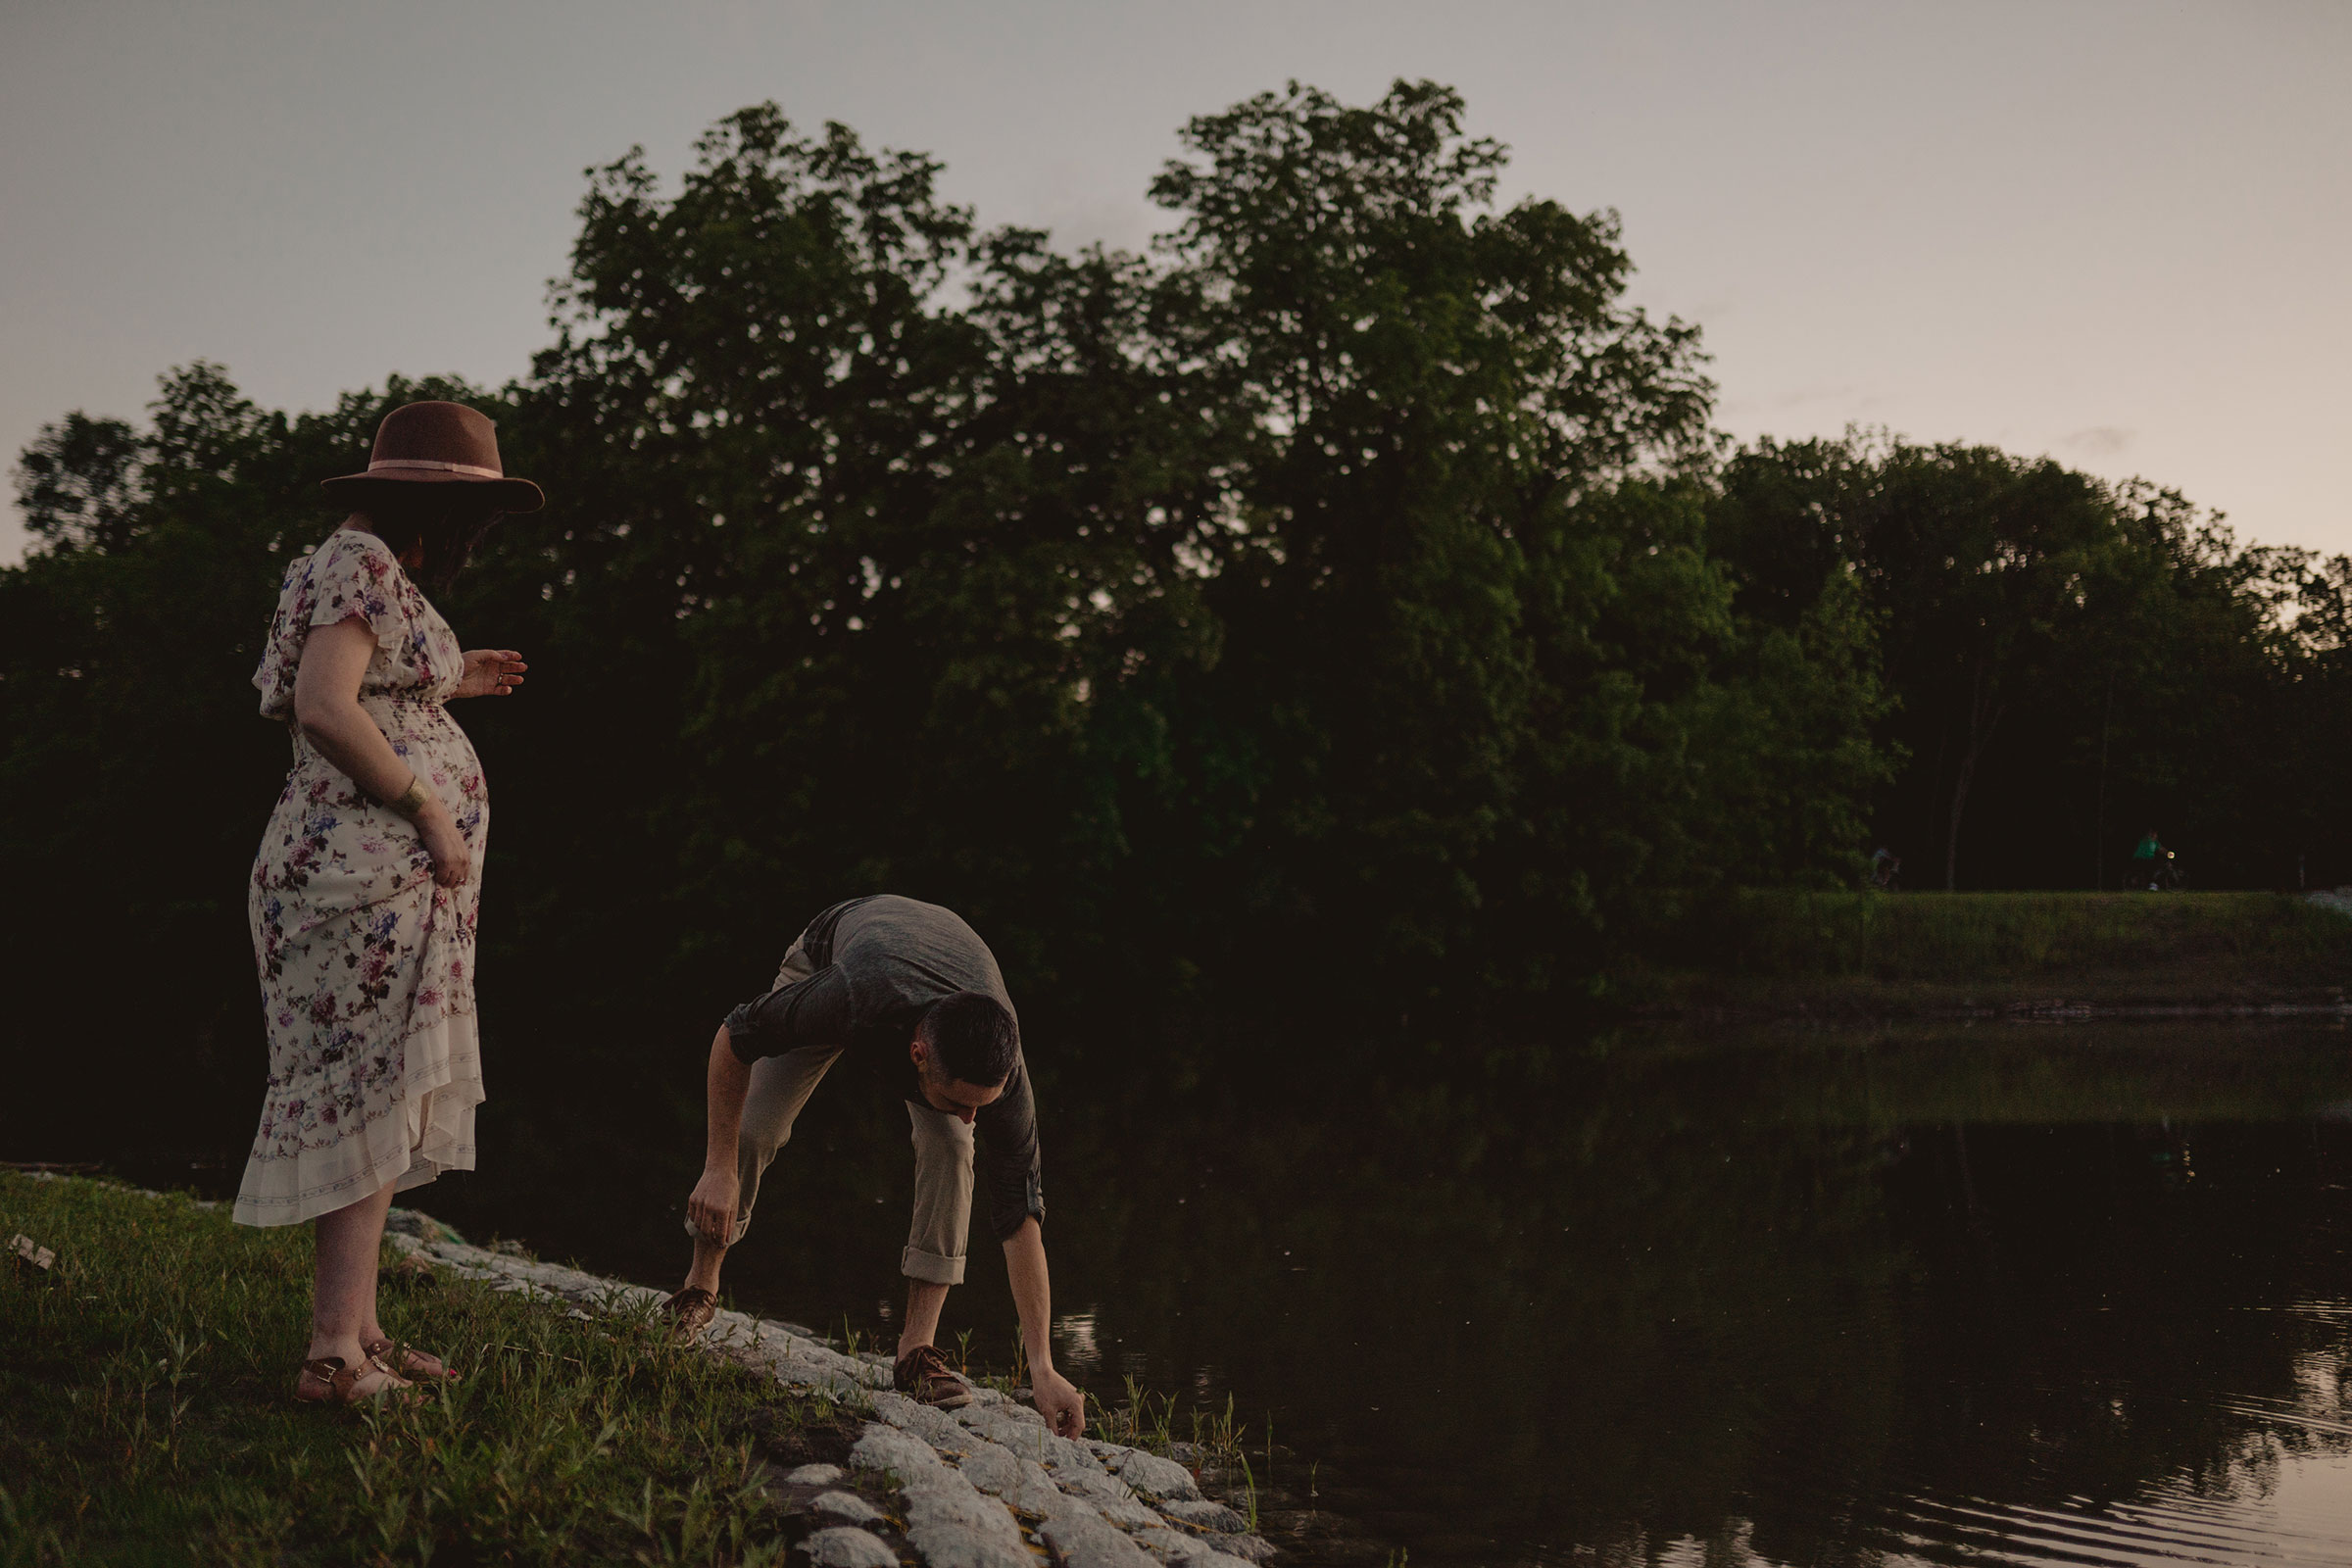 husband-picking-up-rocks-while-pregnant-wife-watches-maternity-desmoines-iowa-raelyn-ramey-photography.jpg